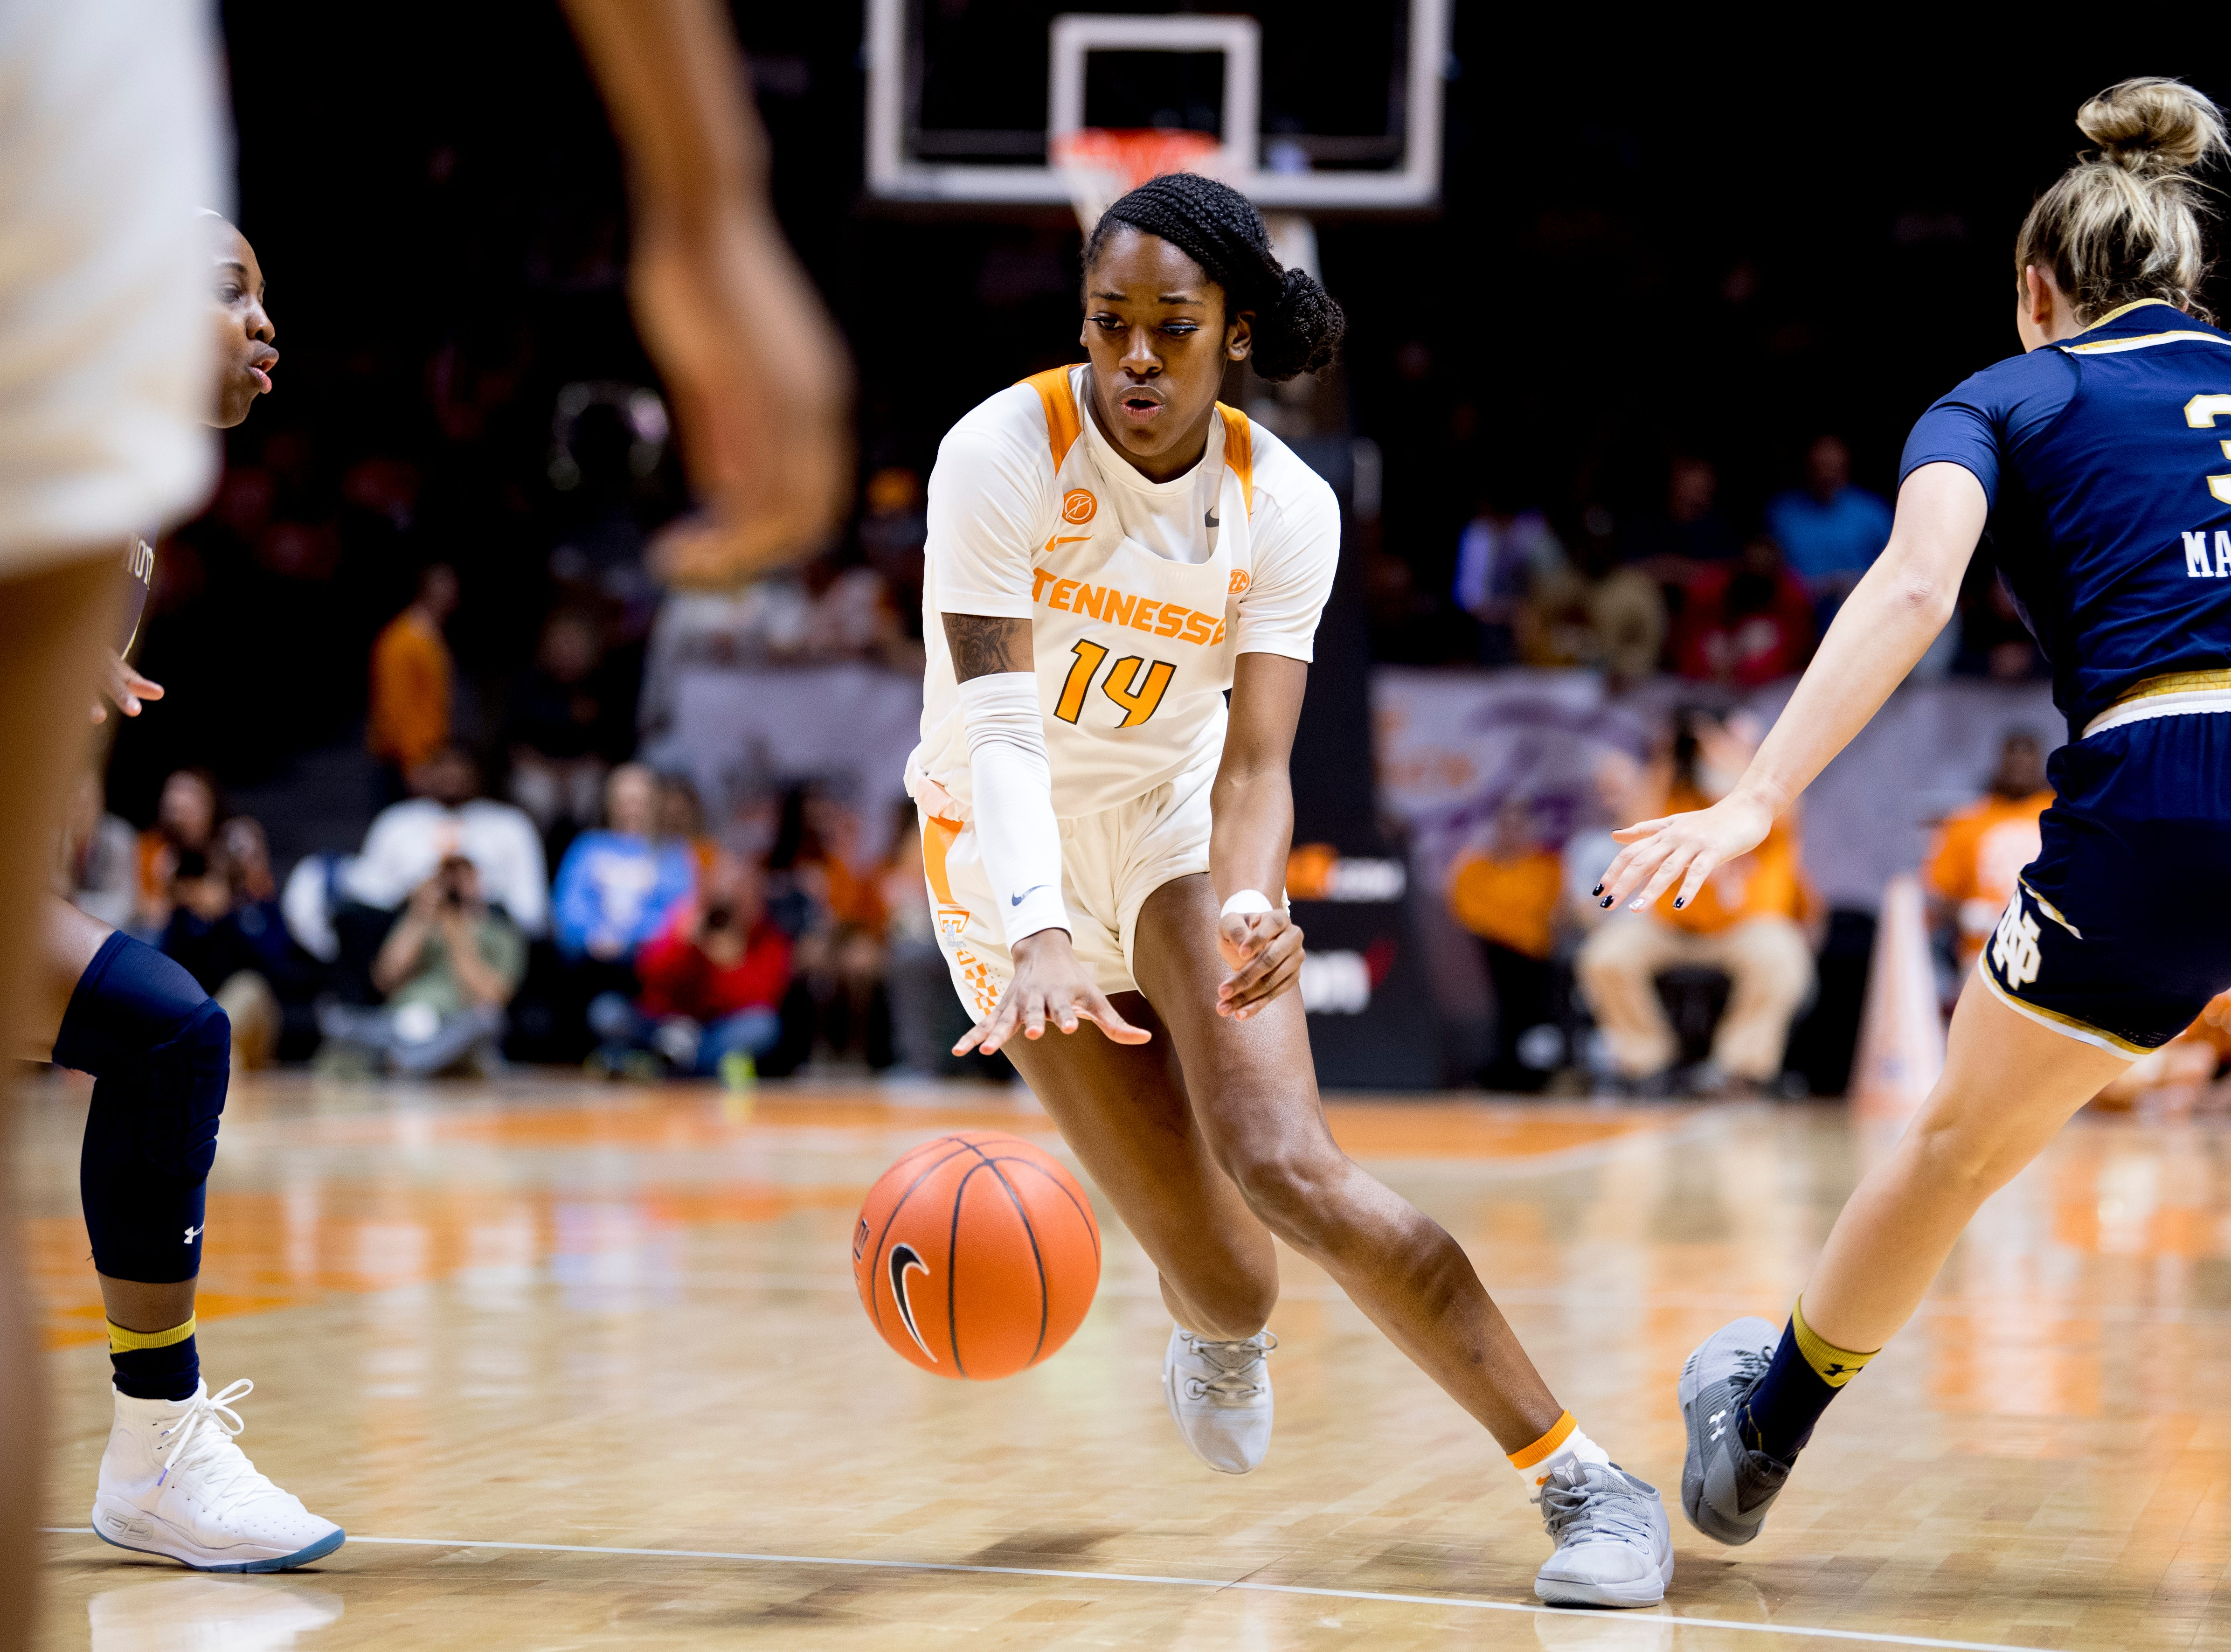 Tennessee guard Zaay Green (14) dribbles the ball past Notre Dame guard Marina Mabrey (3) during a game between Tennessee and Notre Dame at Thompson-Boling Arena in Knoxville, Tennessee on Thursday, January 24, 2019.